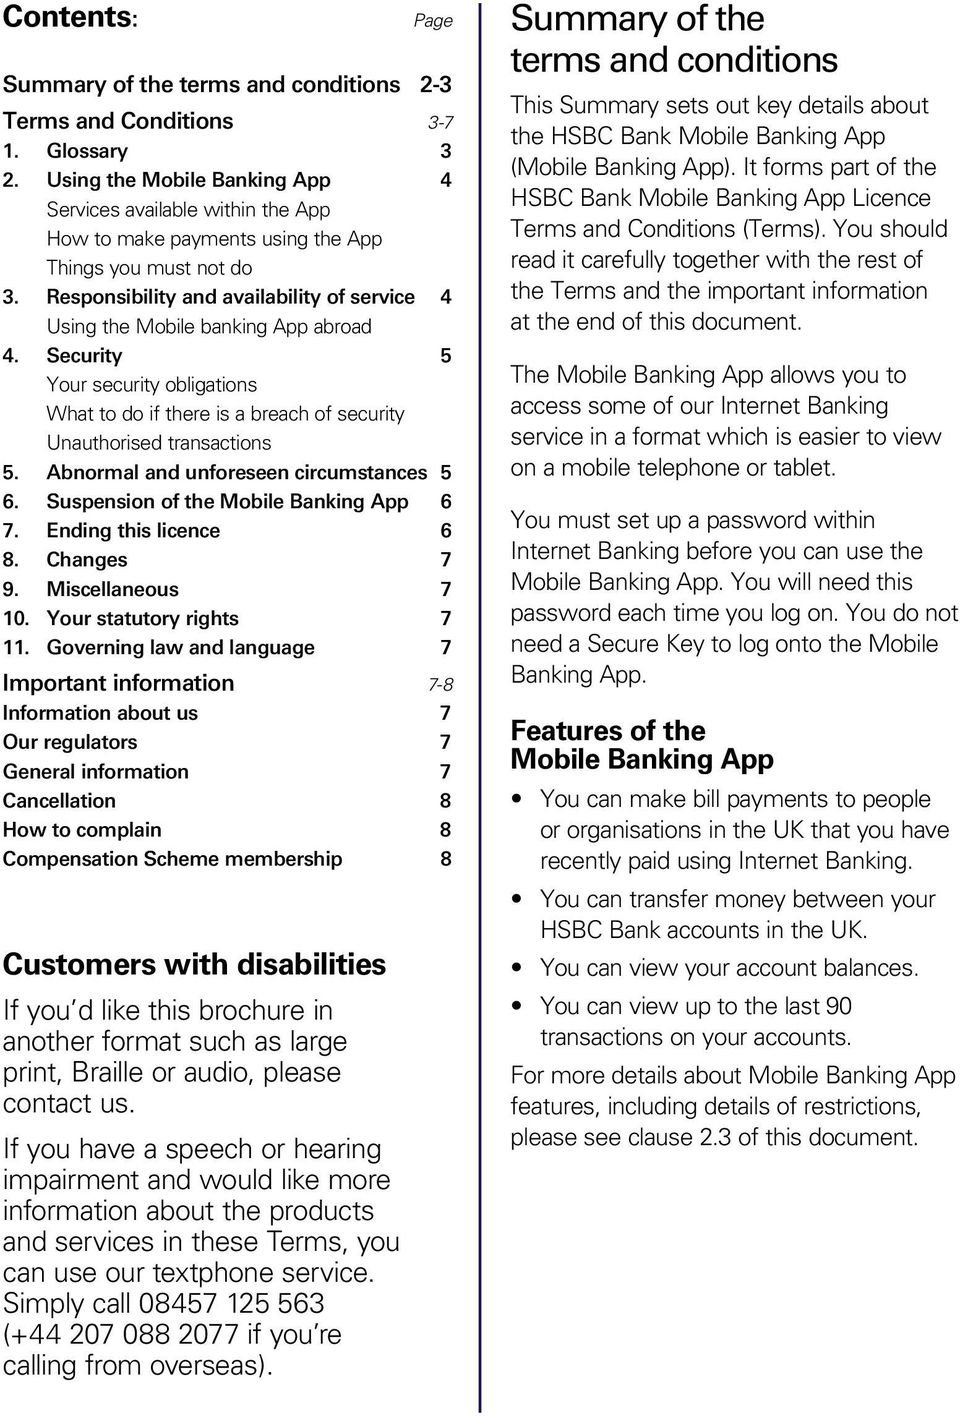 Mobile Banking App  Summary, Terms and Conditions and